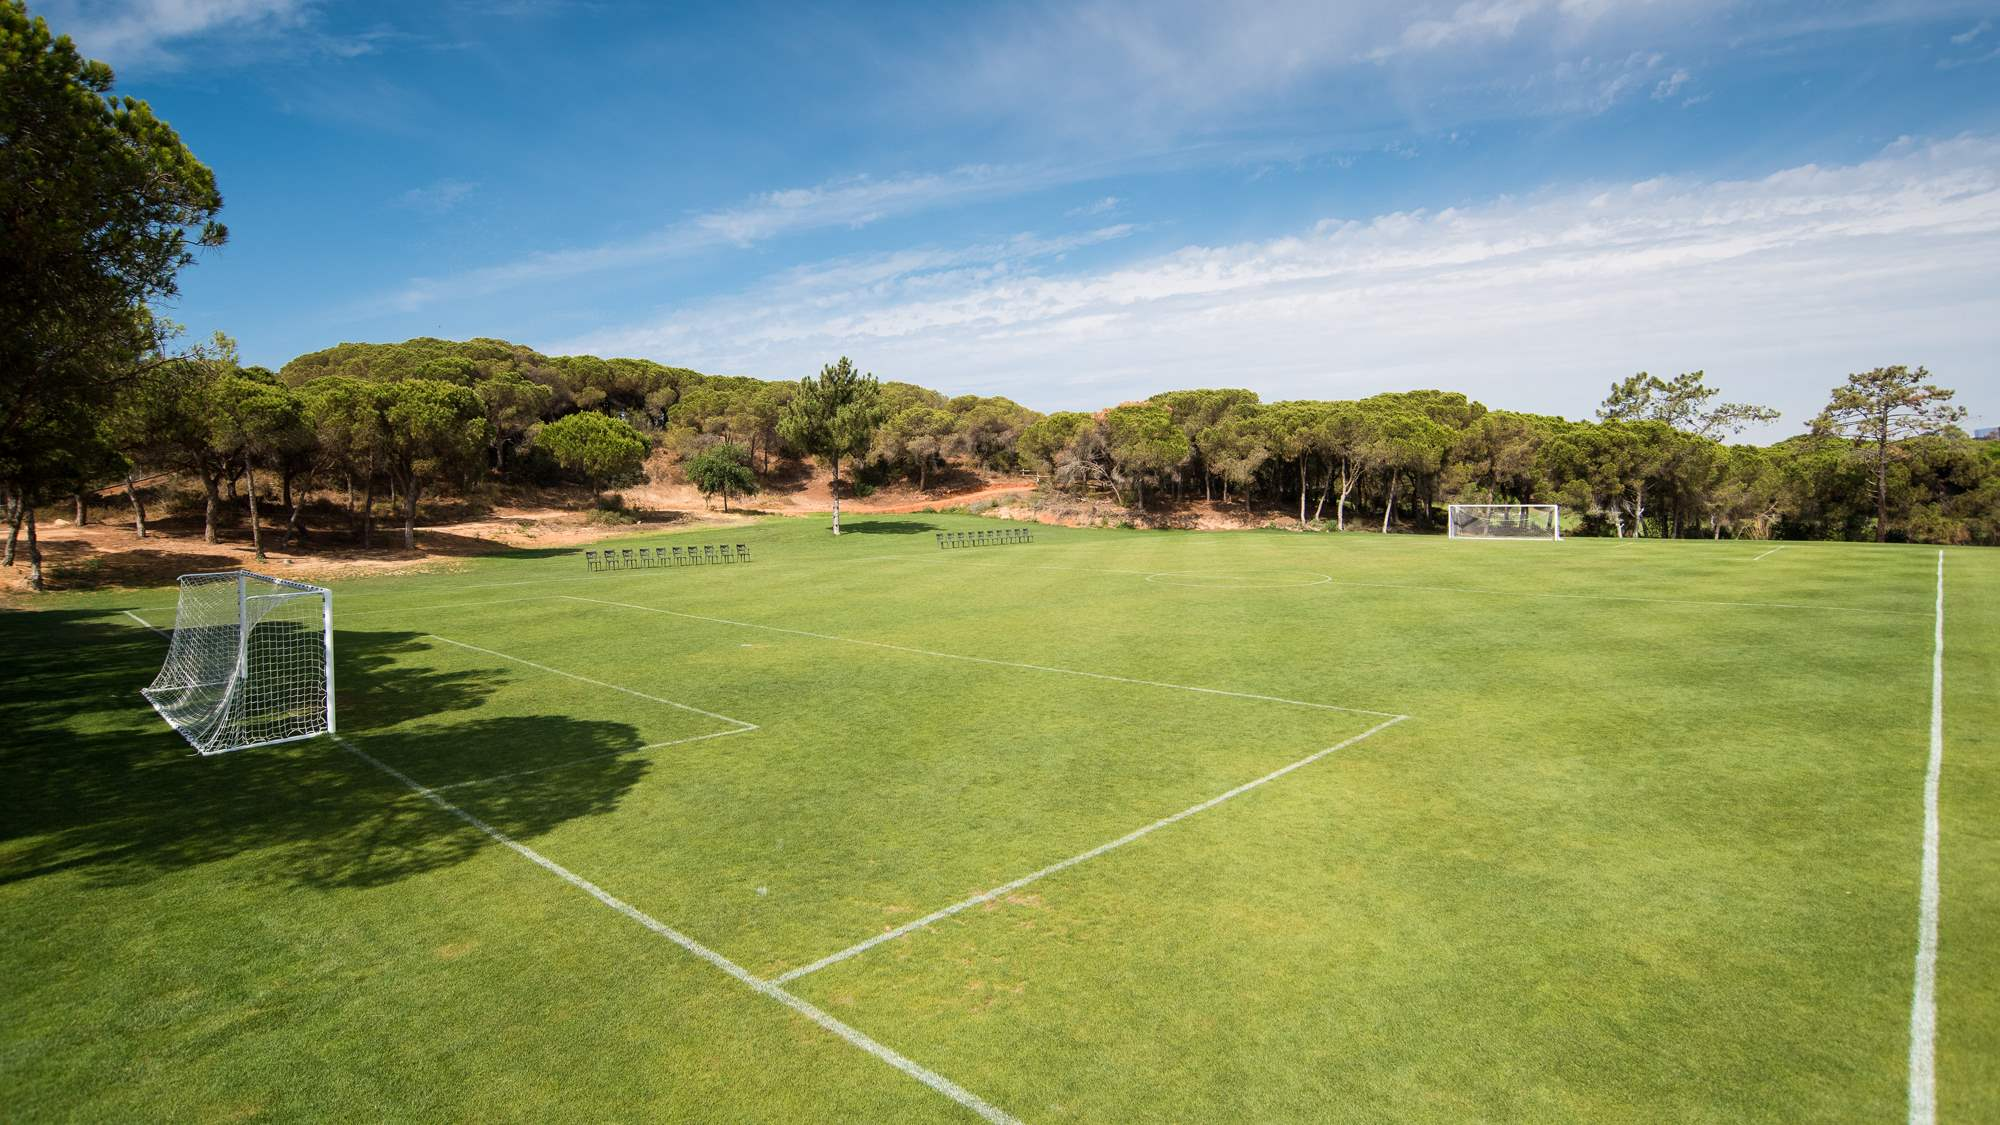 Pine Cliffs Gardens, Two Bedroom Suite, S/C Basis, 2 bedroom apartment in Pine Cliffs Resort, Algarve Photo #53